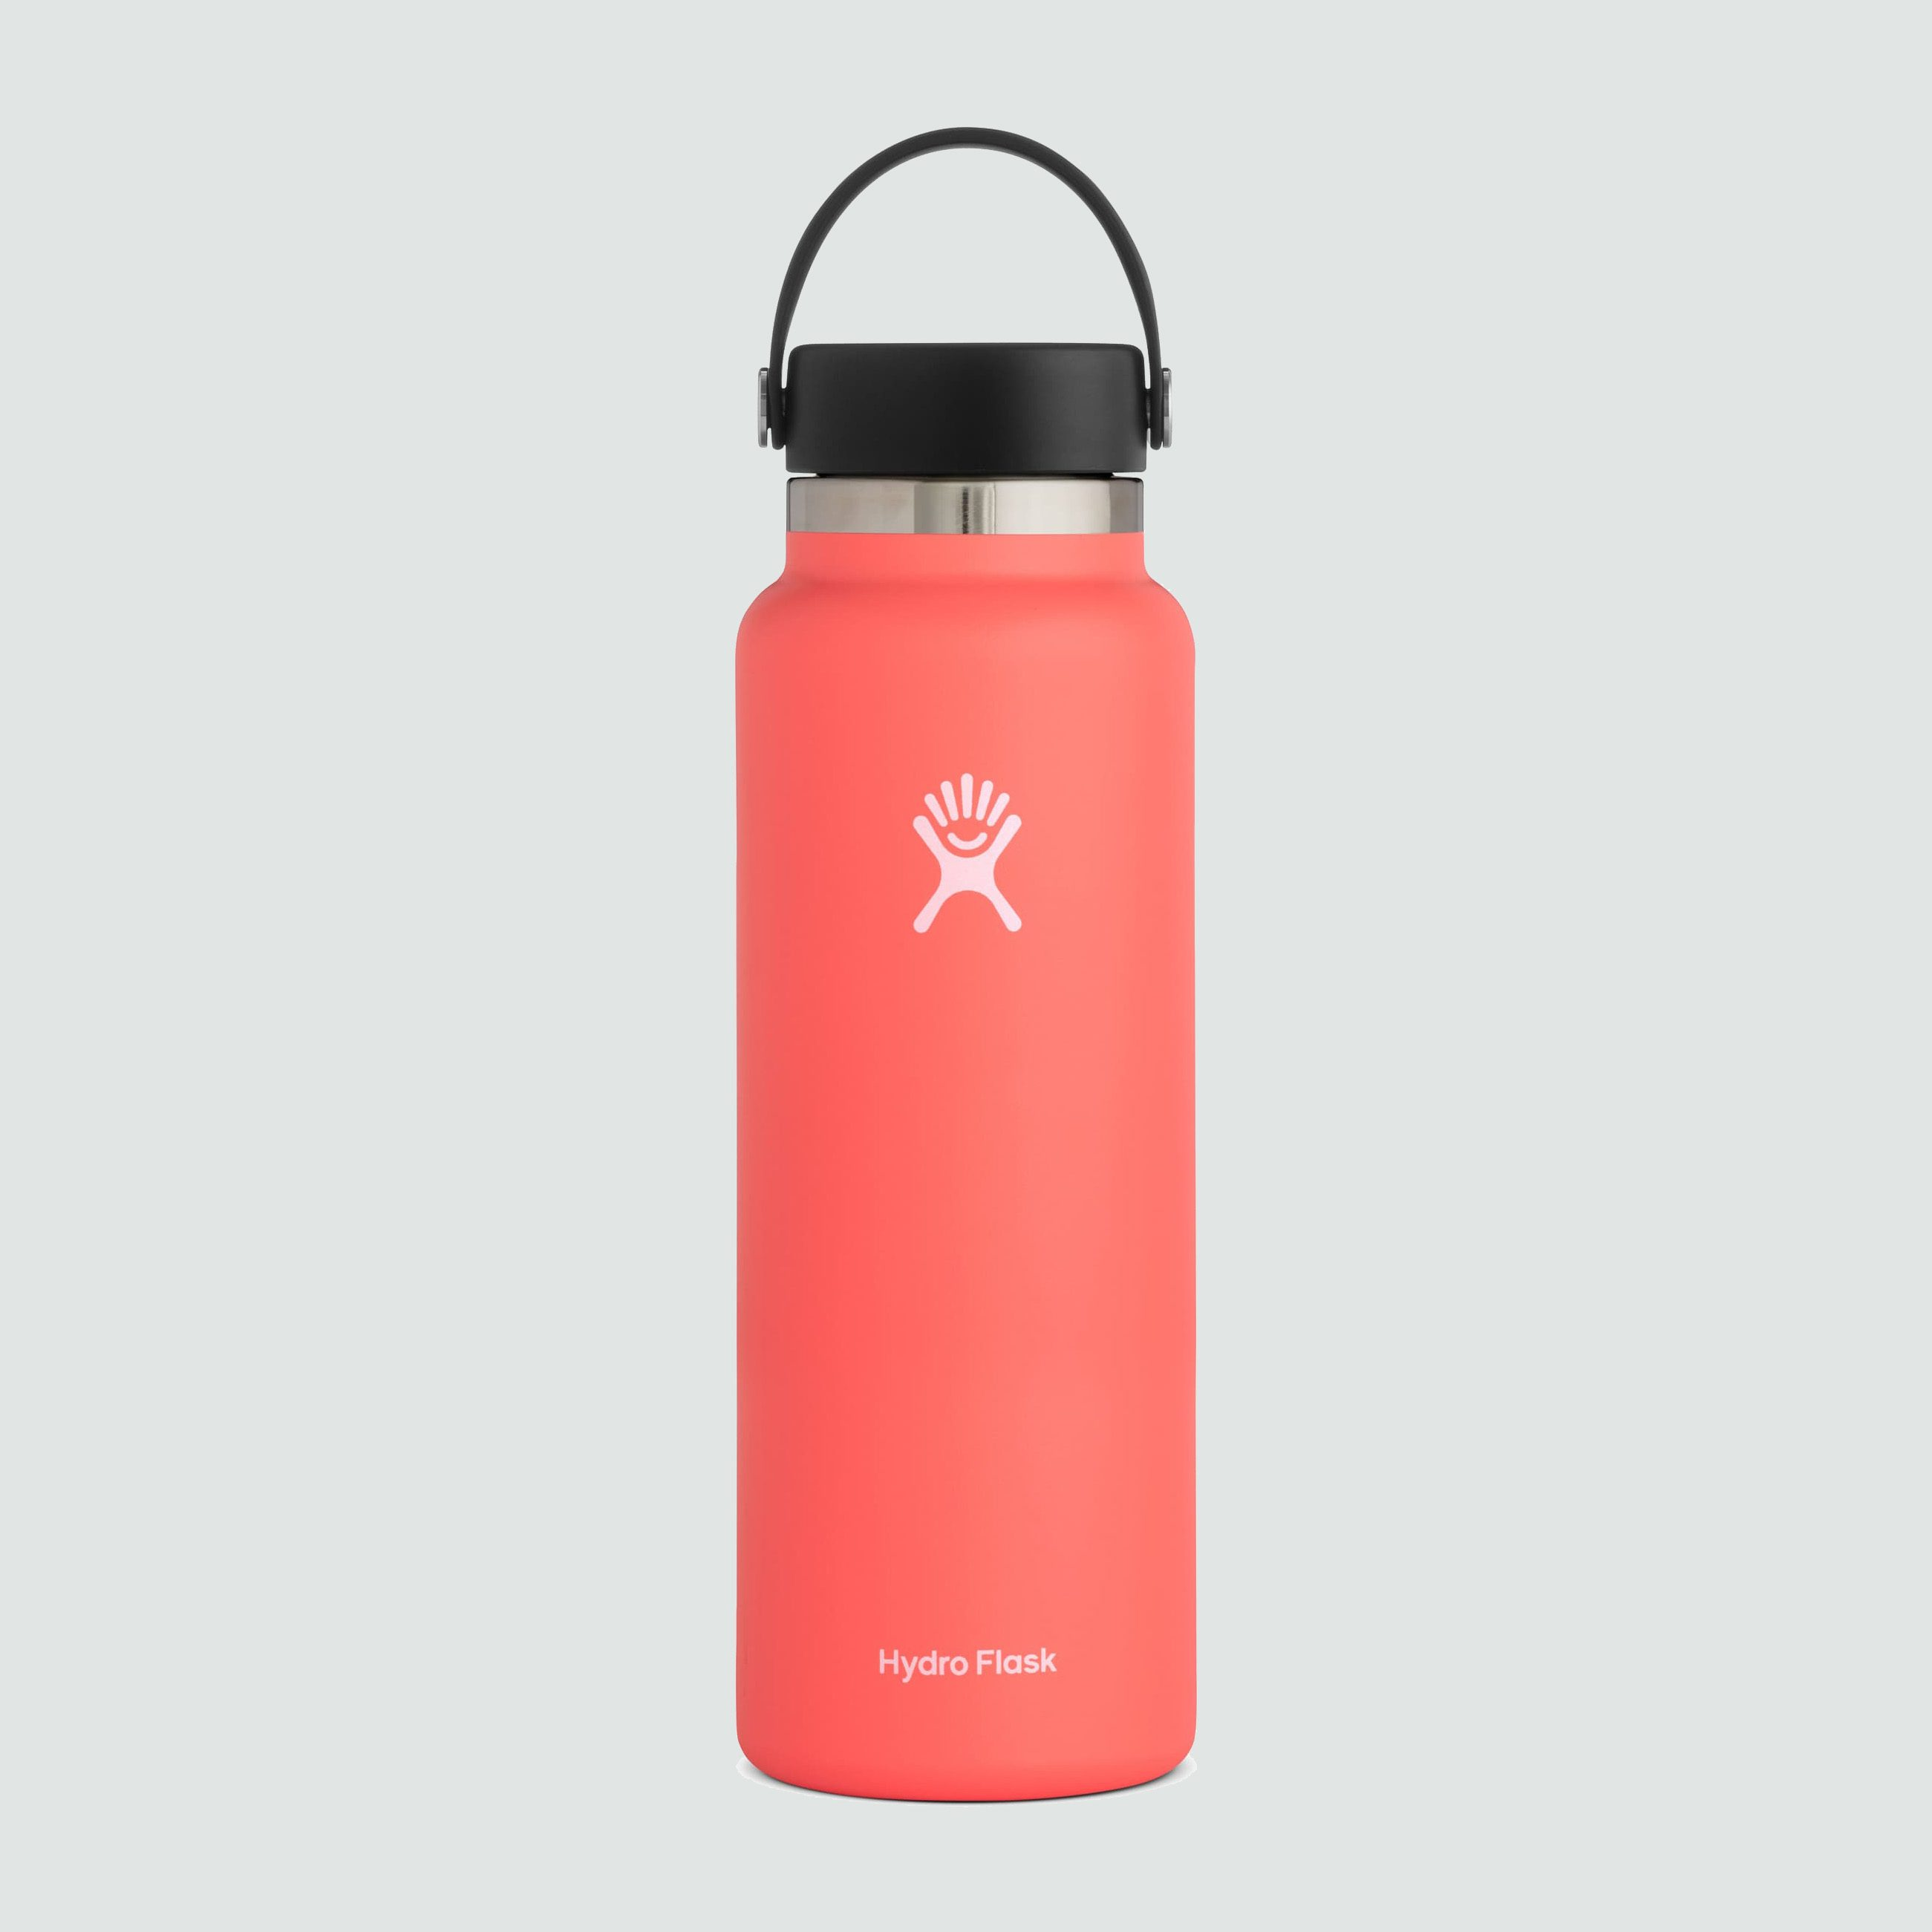 Hydroflask 40-Ounce Wide Mouth Cap Bottle